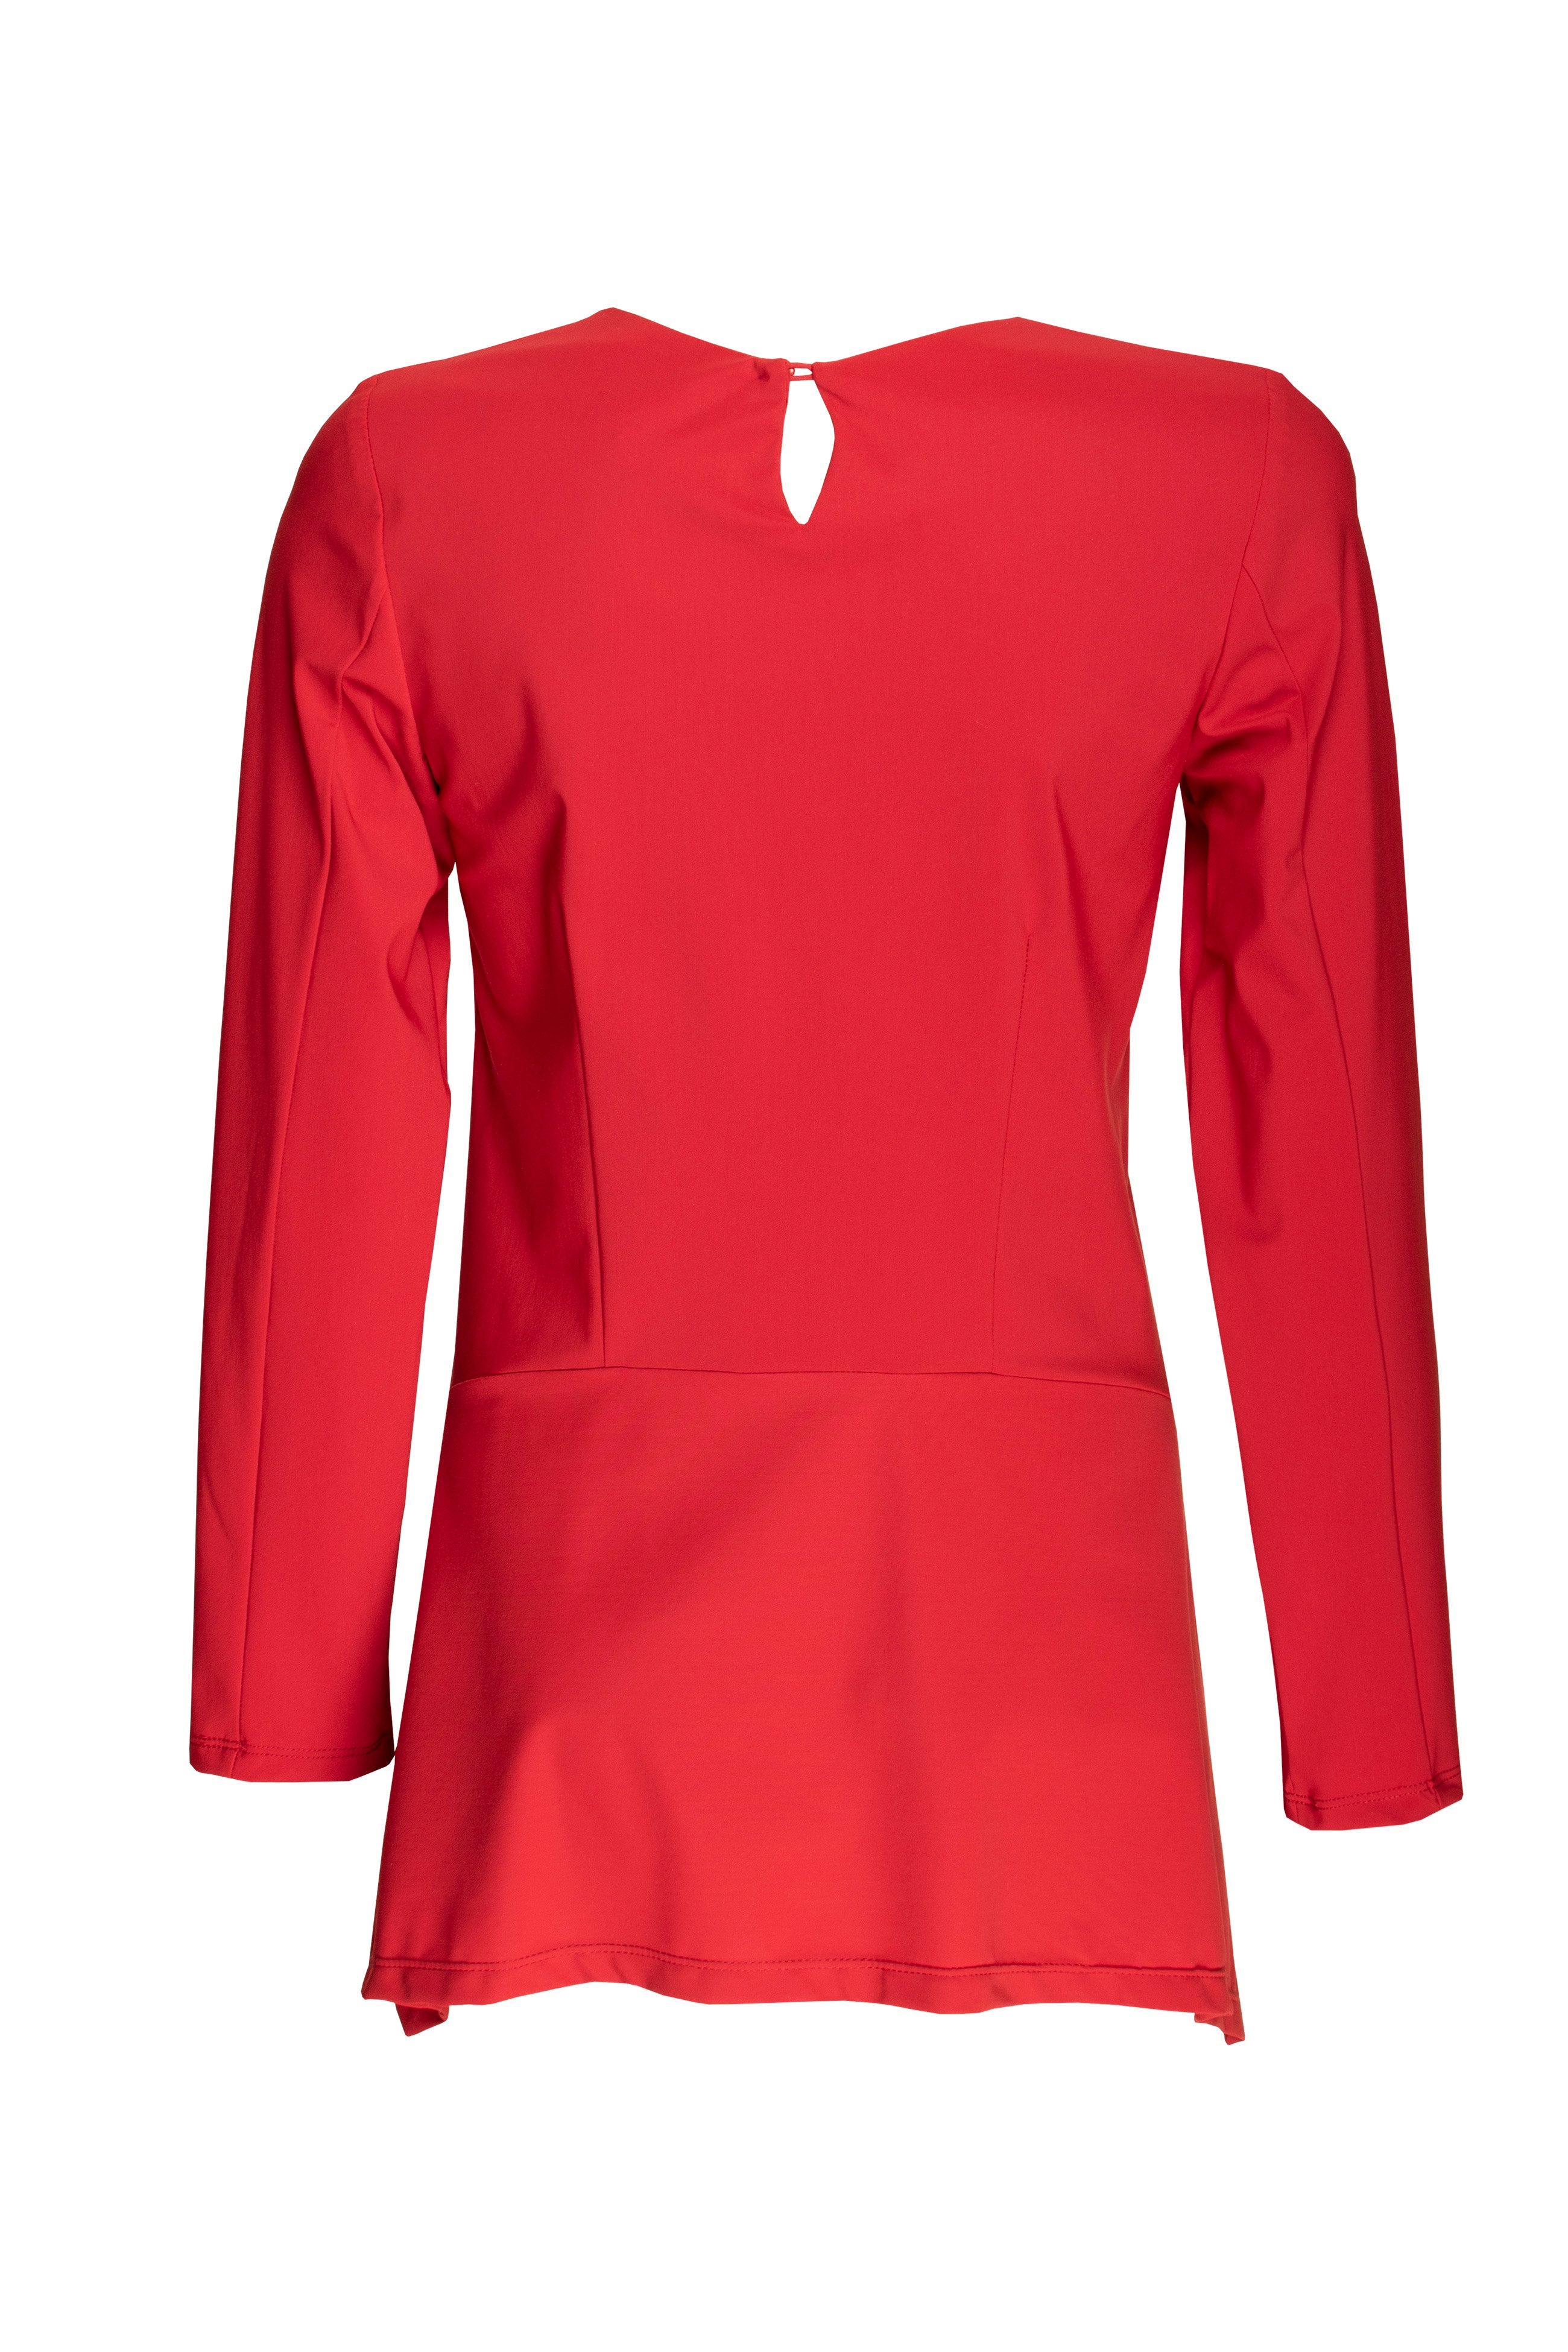 Red Jersey Long Sleeve Angle Top 8225